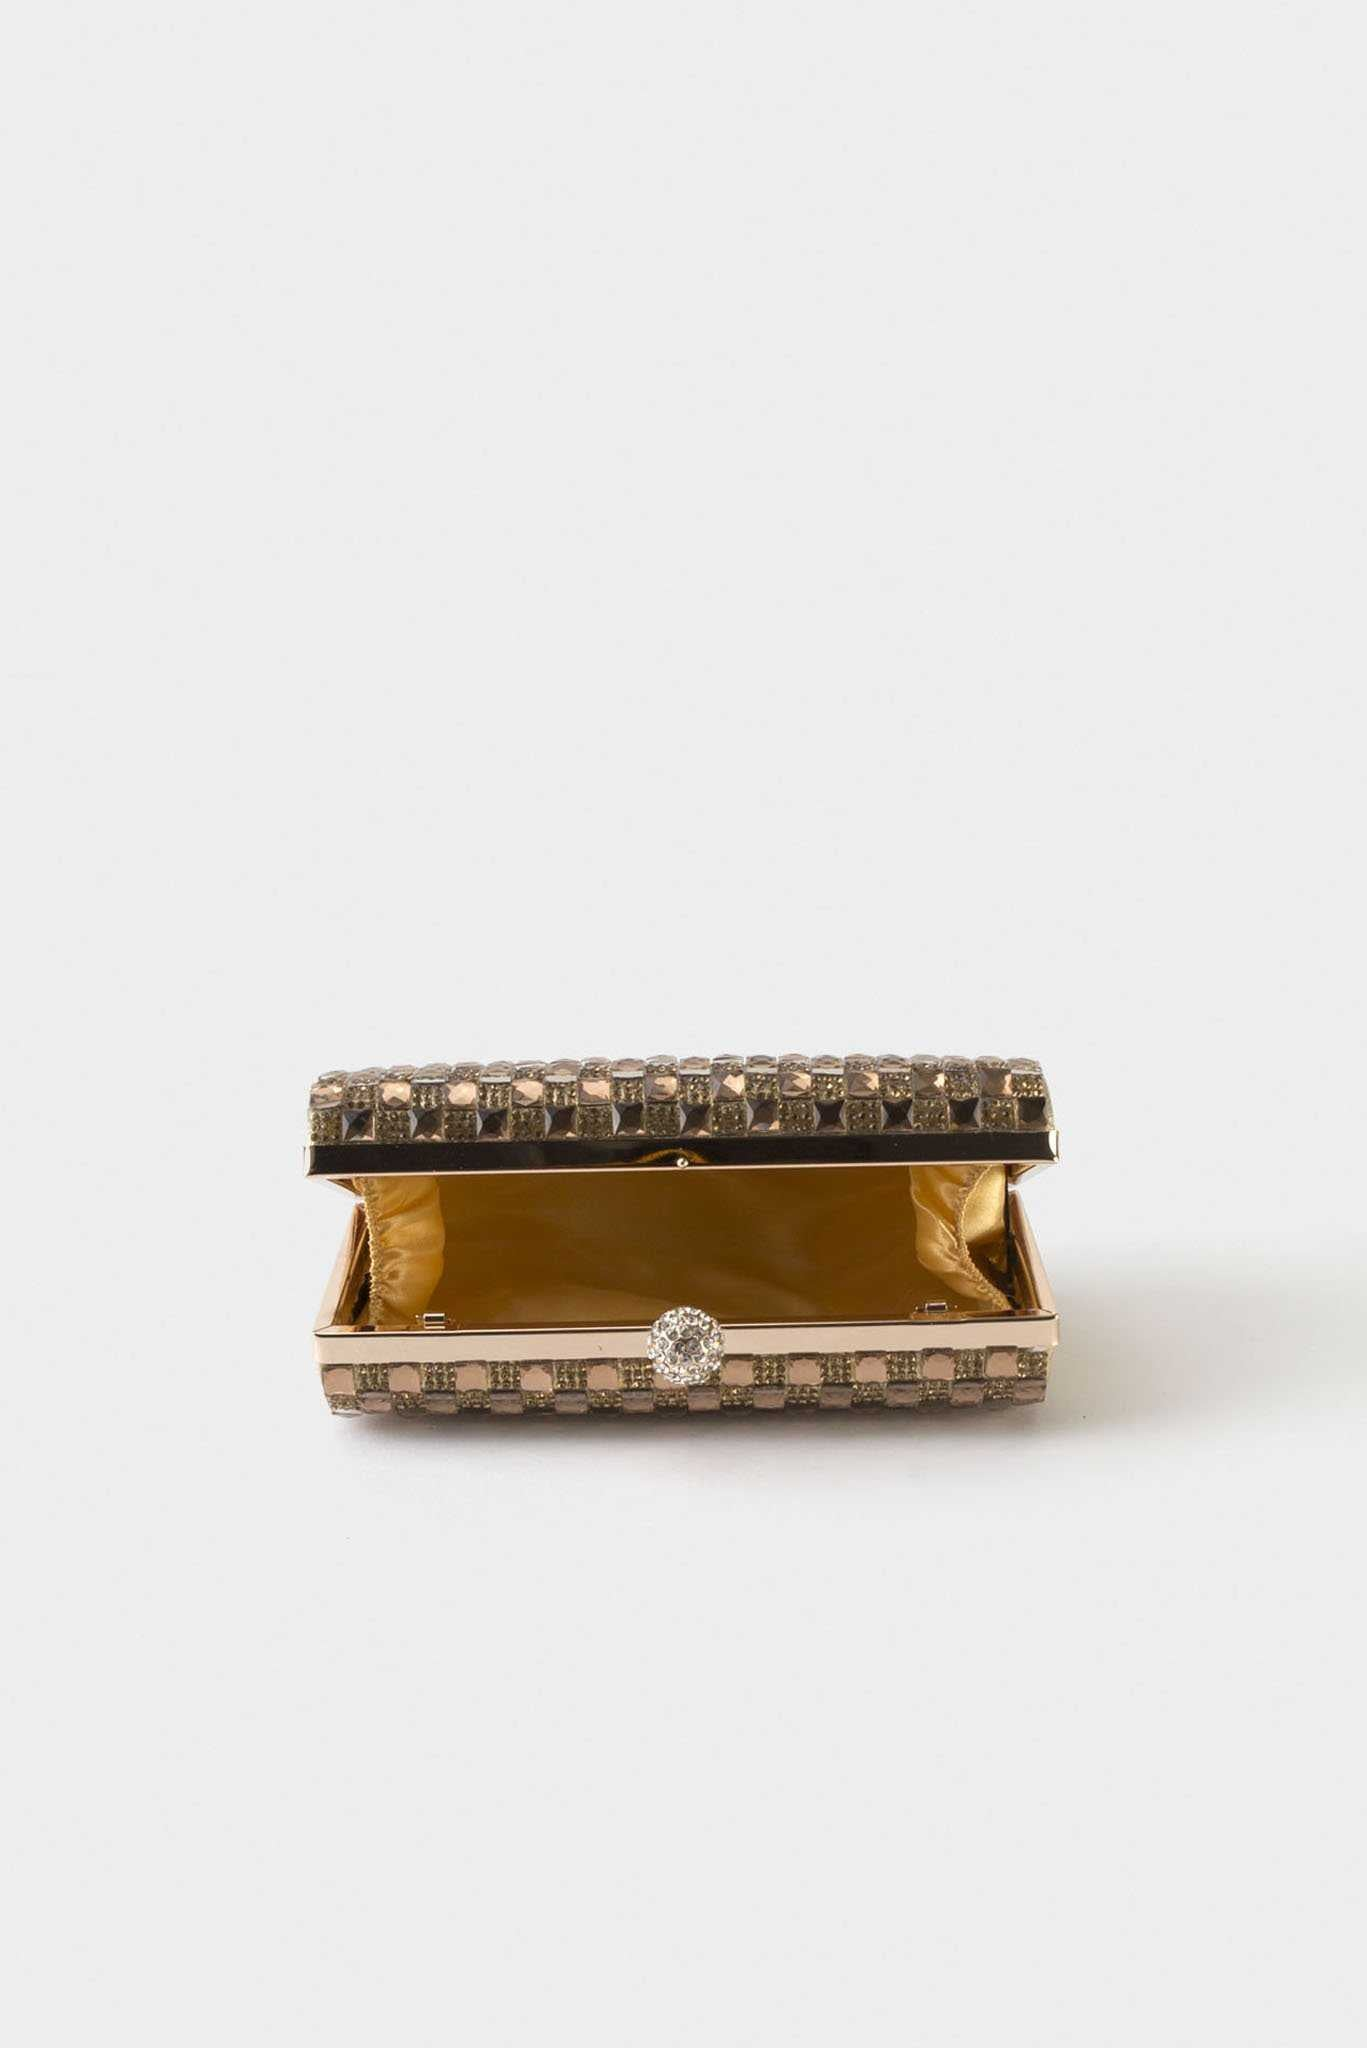 Embellished Clutch - Gold | Raw Orange